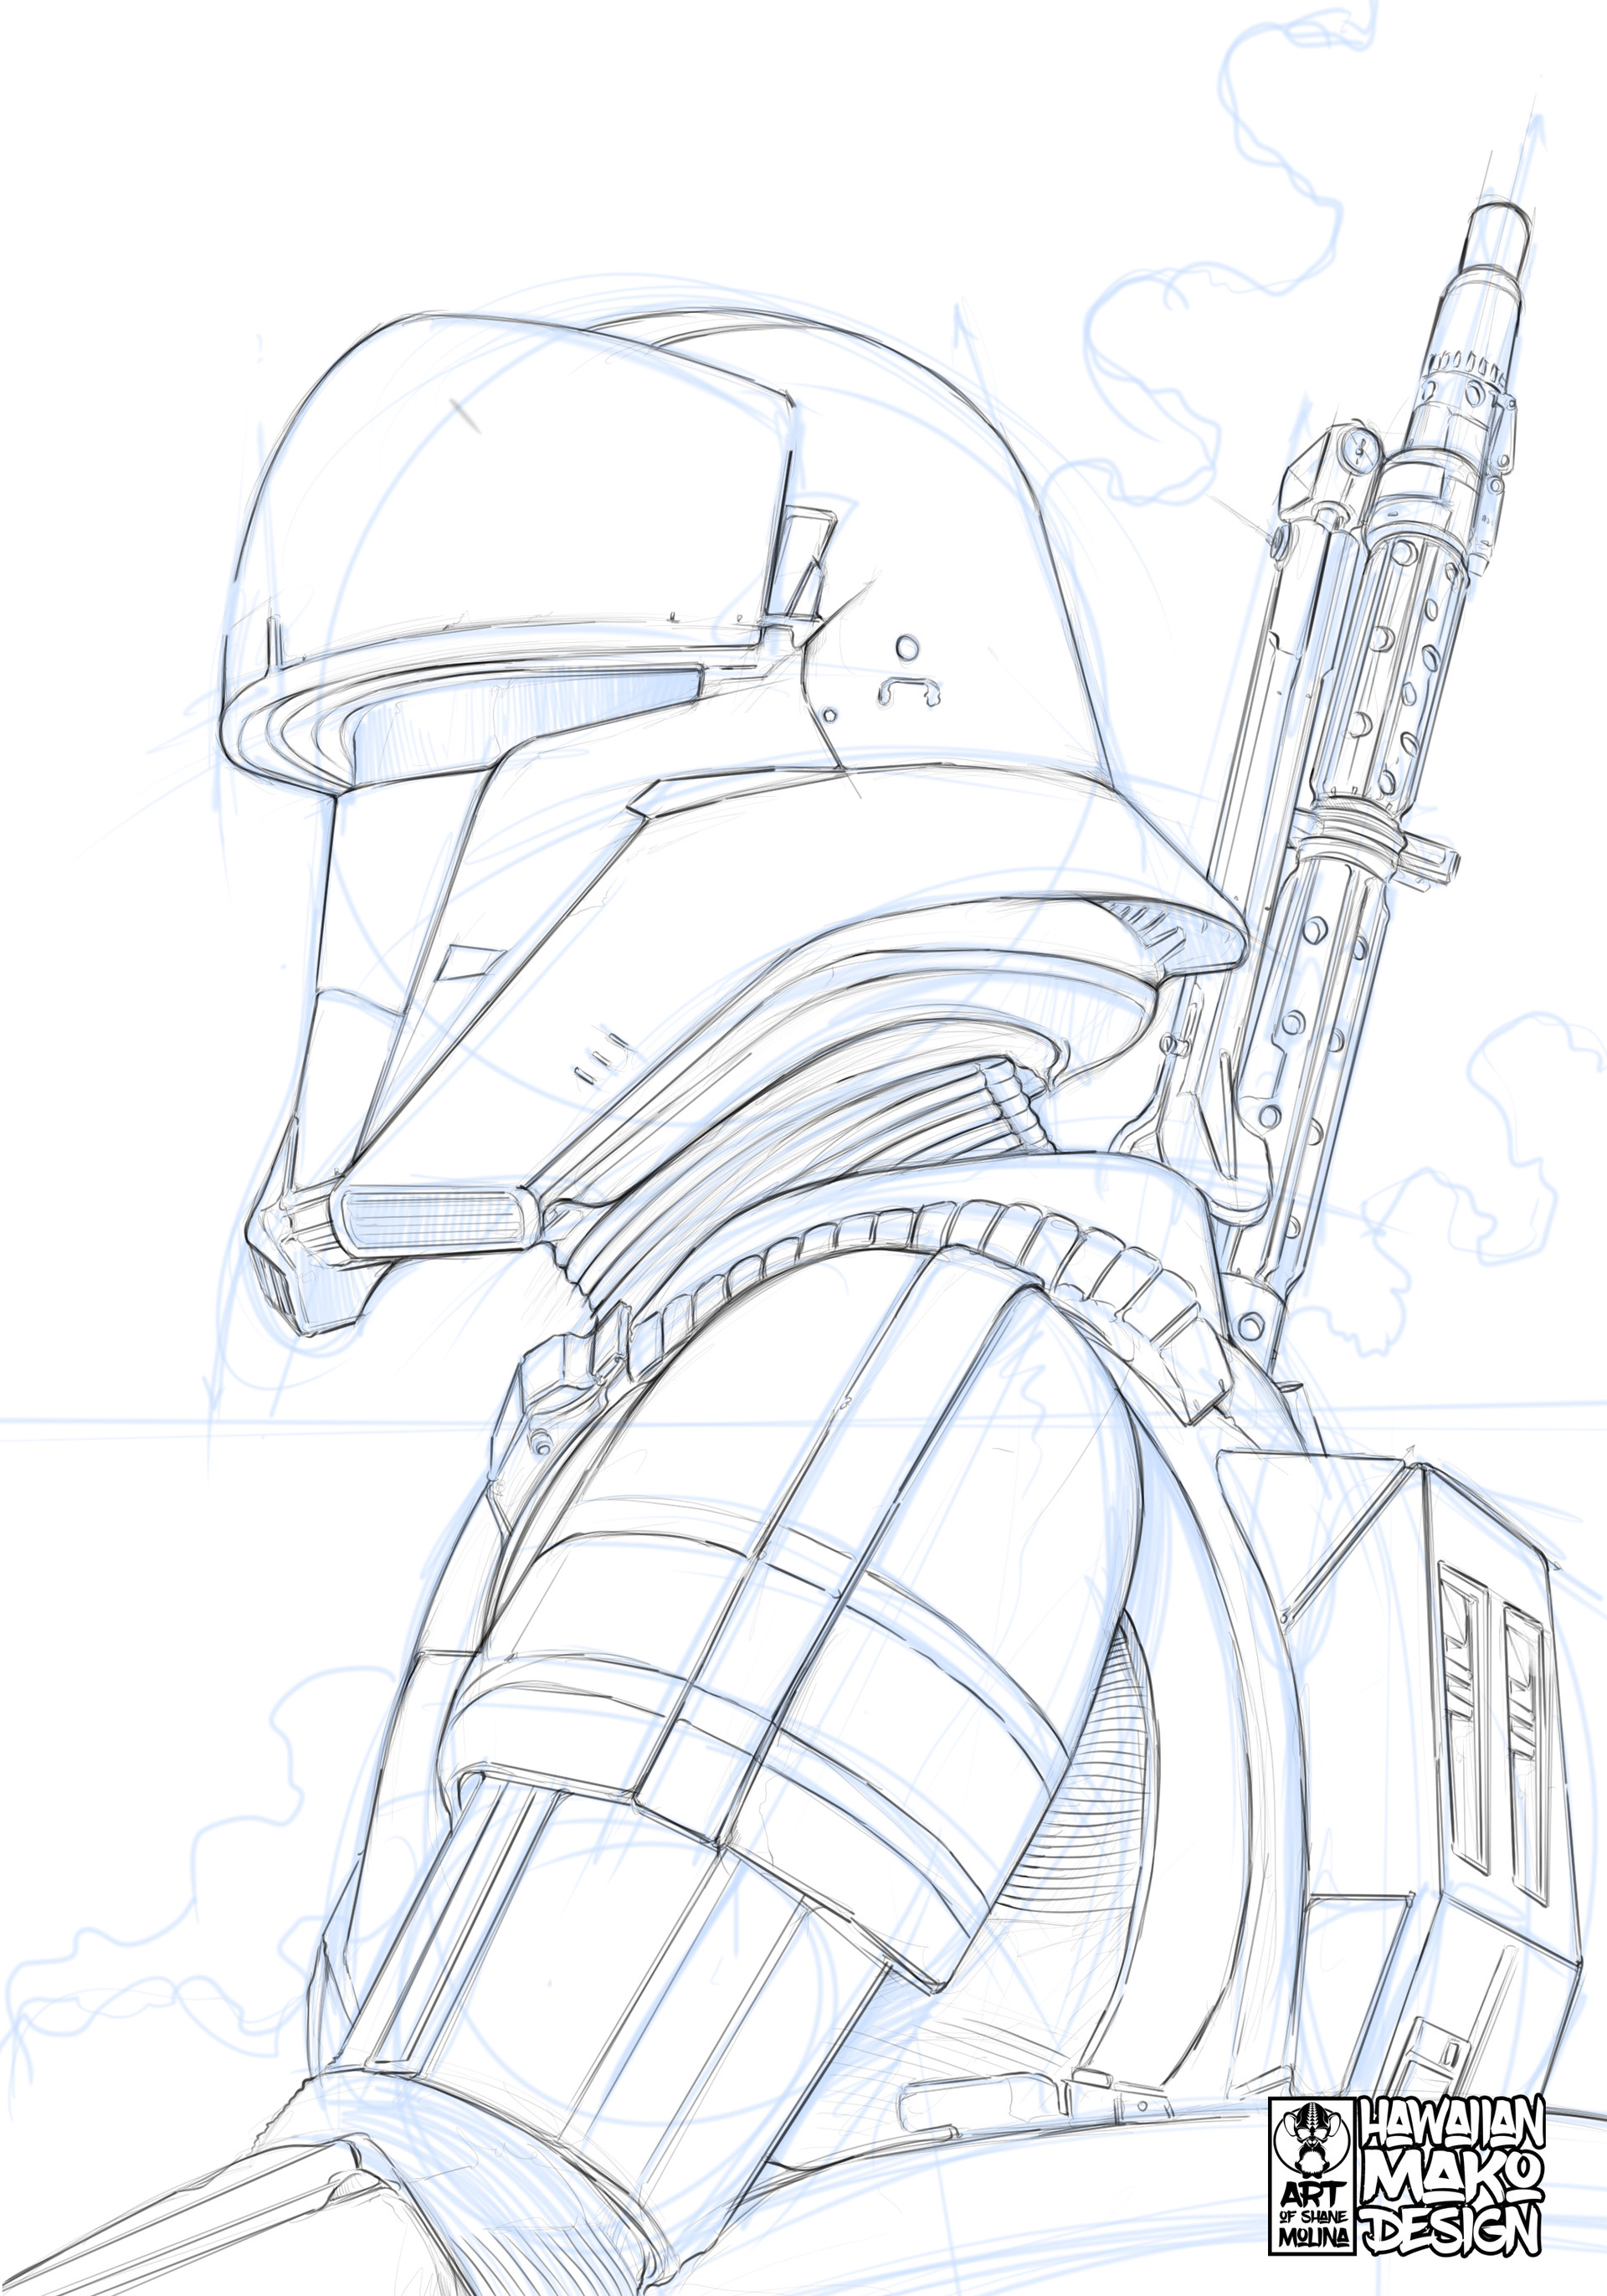 Shane molina tank trooper sketch